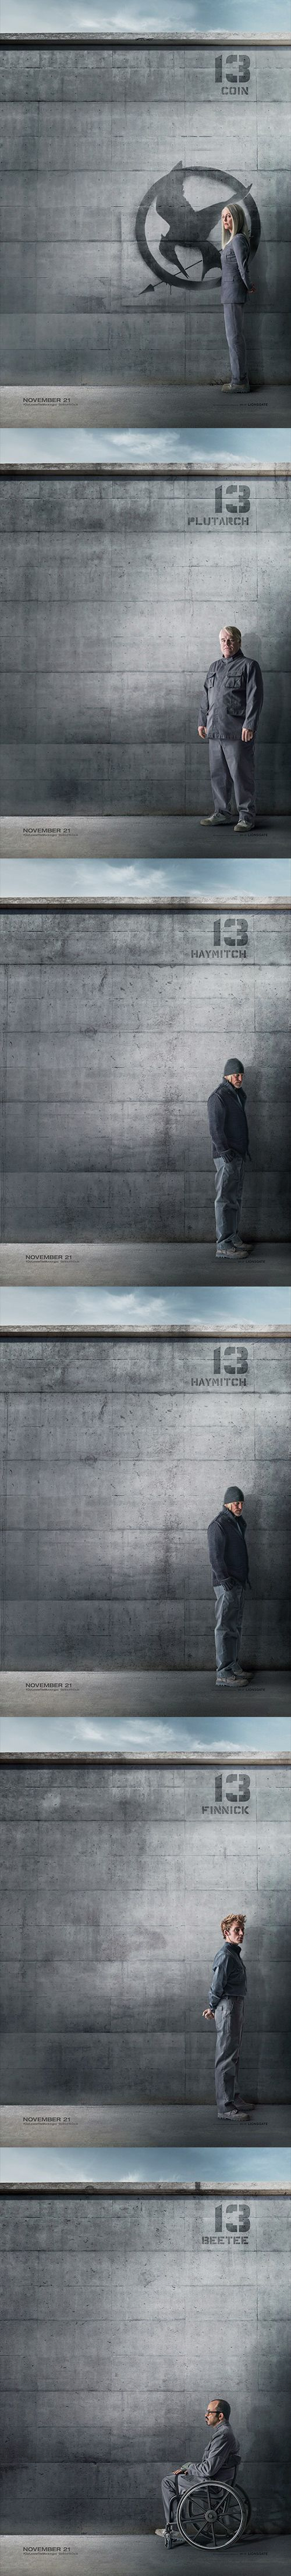 The new Hunger Games posters are here! #Mockingjay